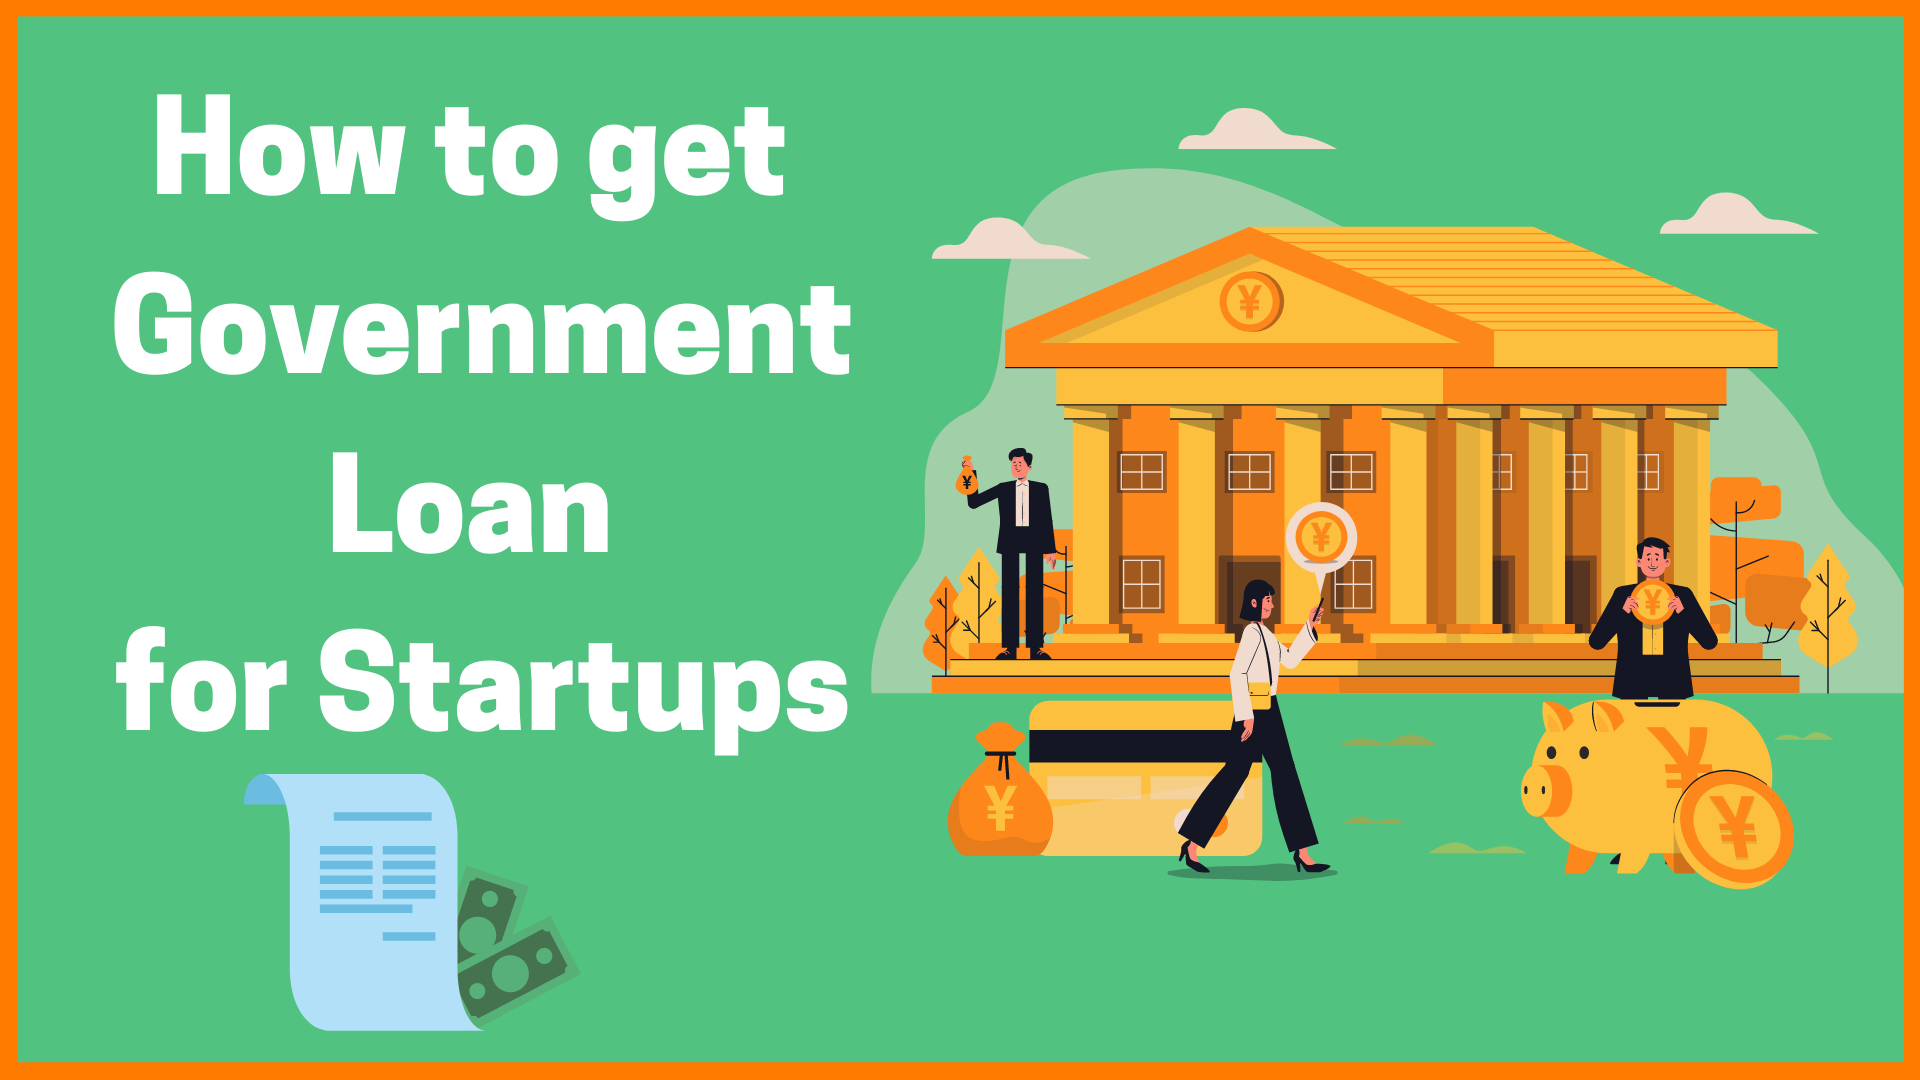 How to get Government Startup Loan